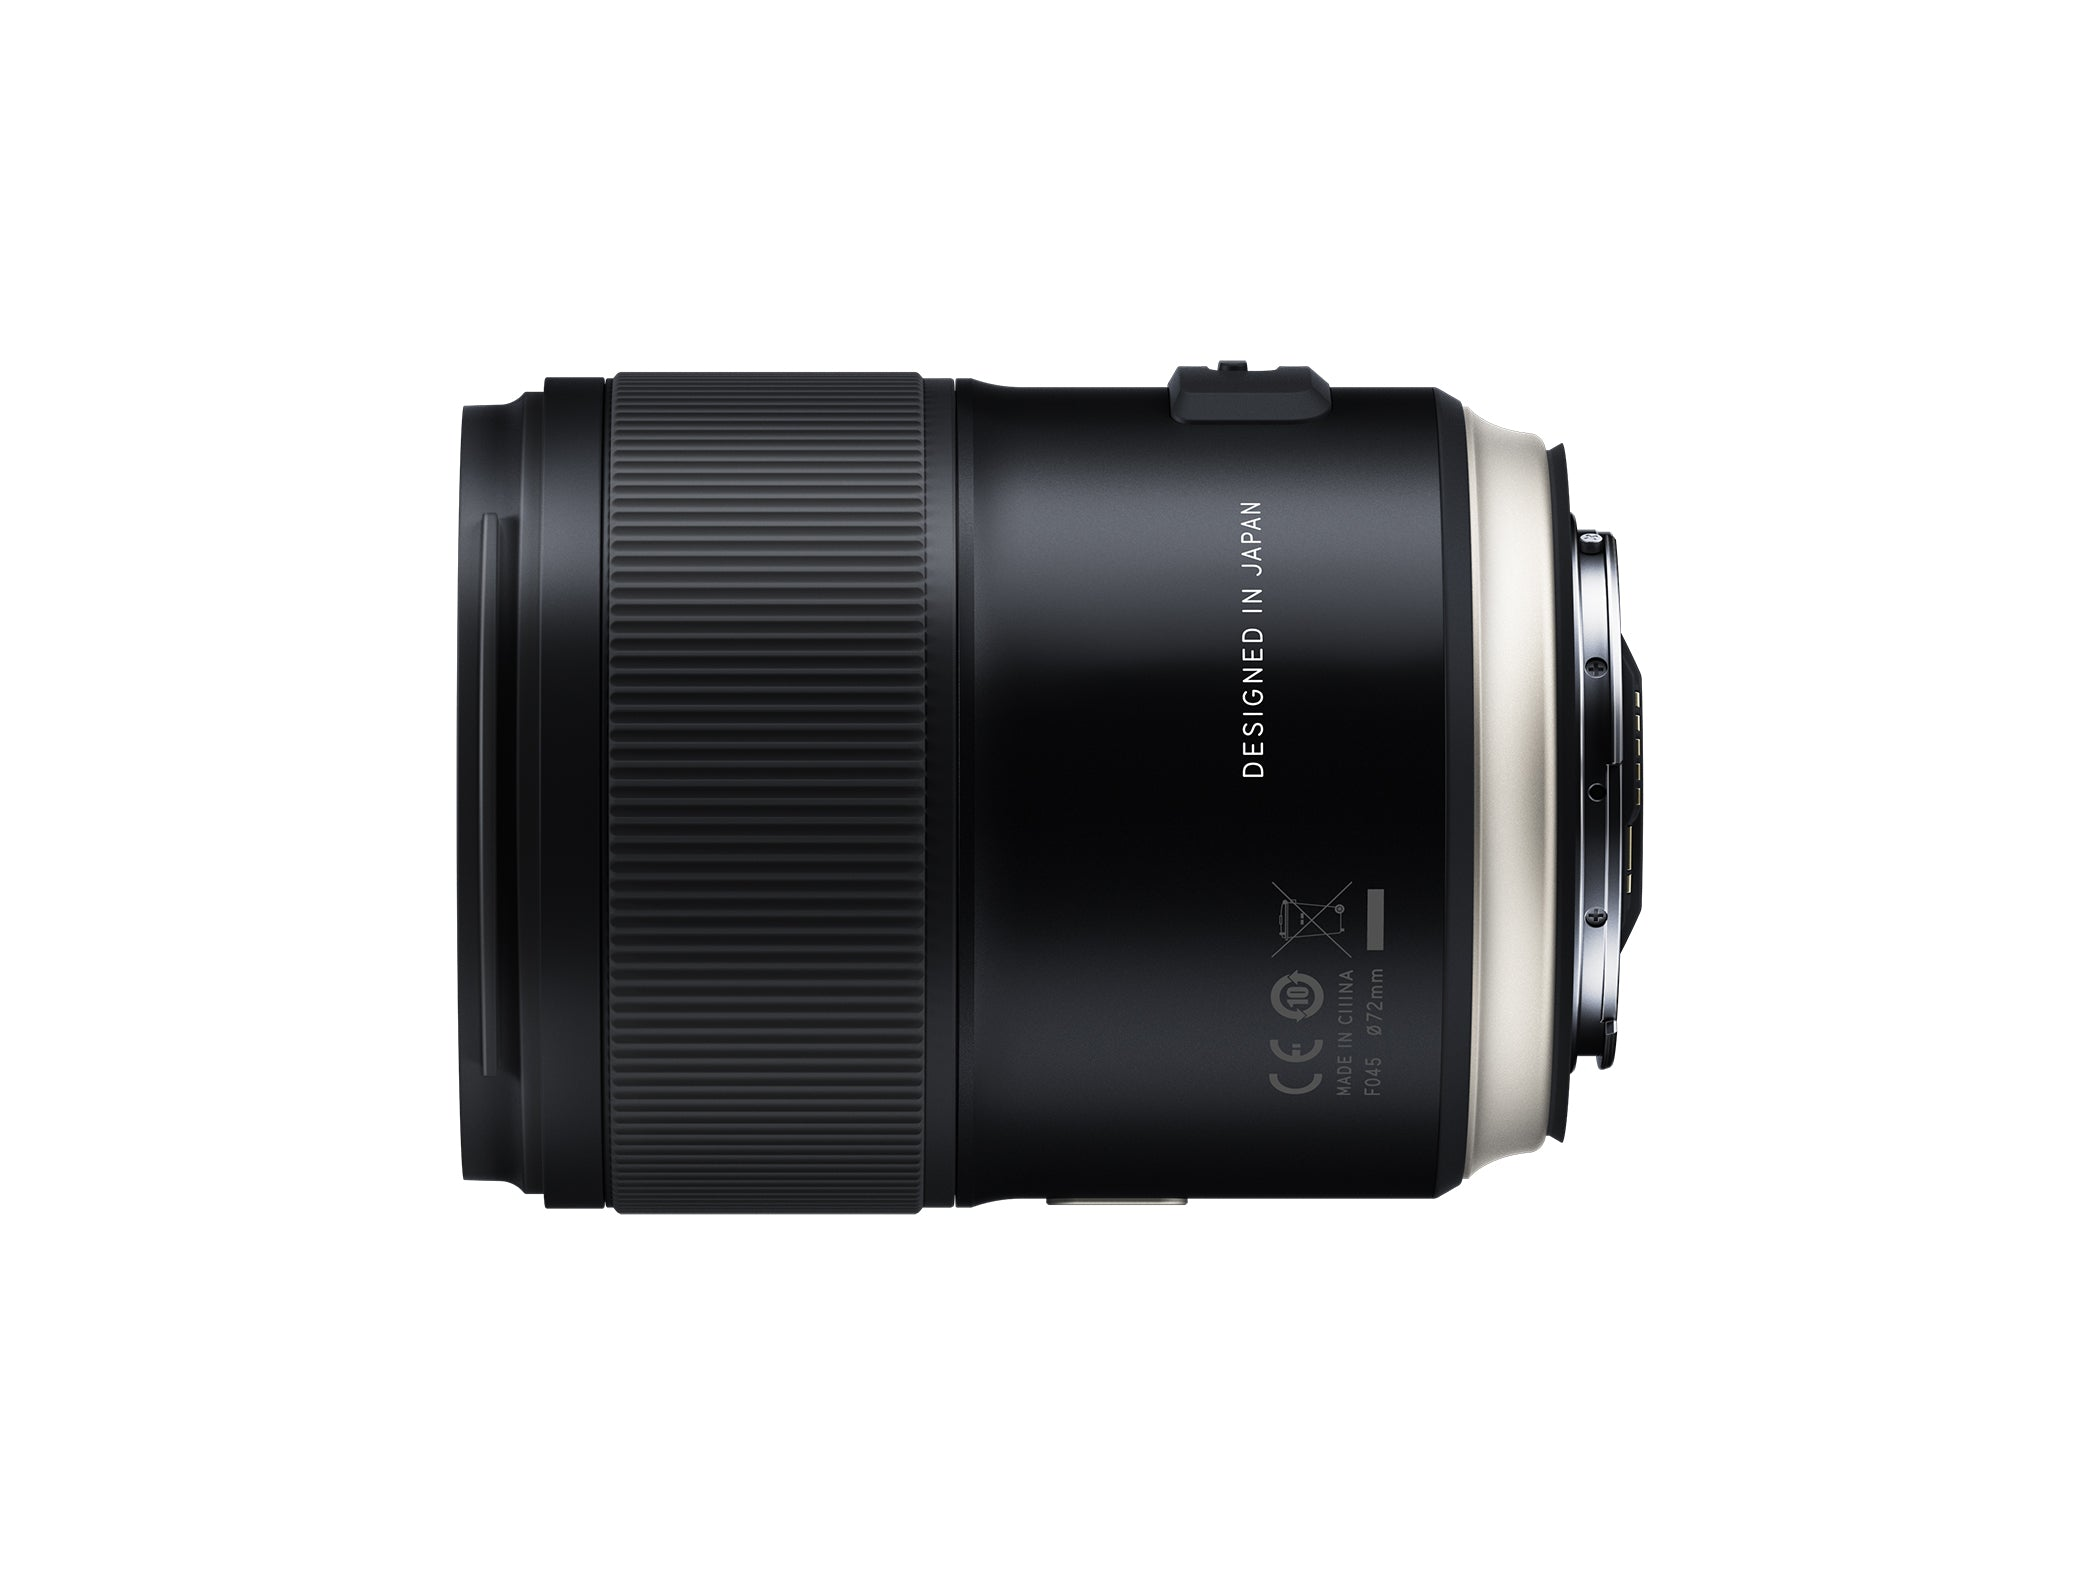 Tamron SP 35mm f/1.4 Di USD w/hood and pouch Canon Mount AFF045C-700